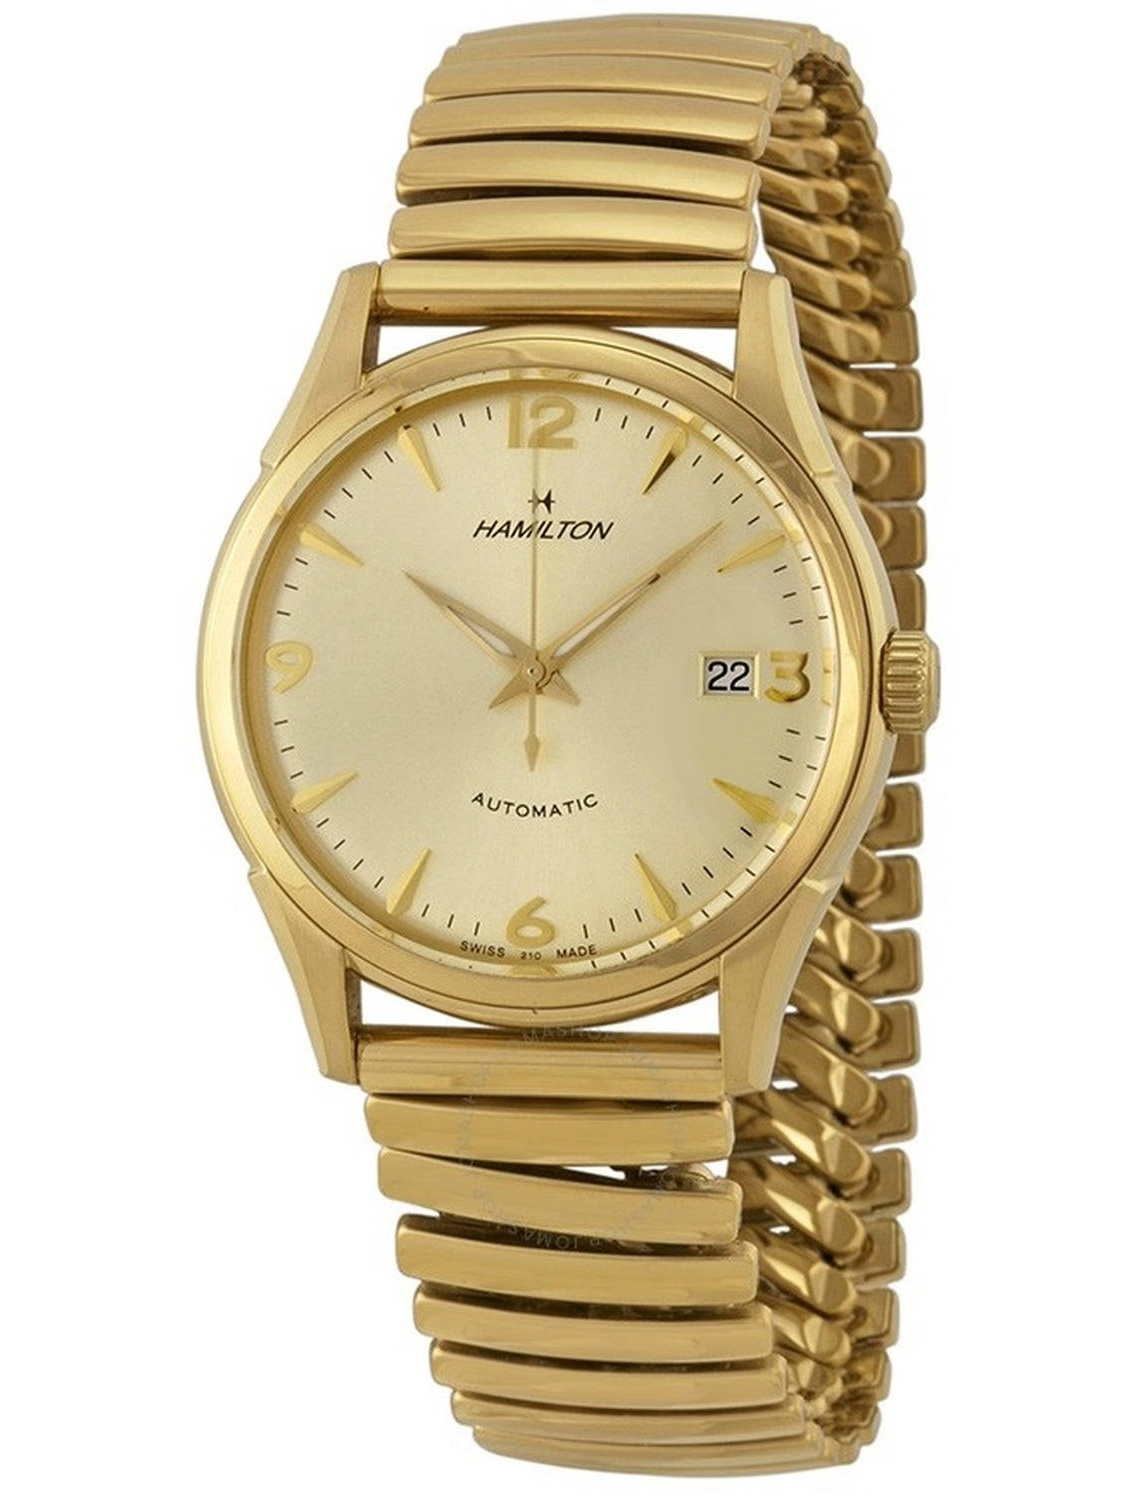 Timeless Classic Thin-o-matic Gold-Tone Automatic Men's Watch, H38435221